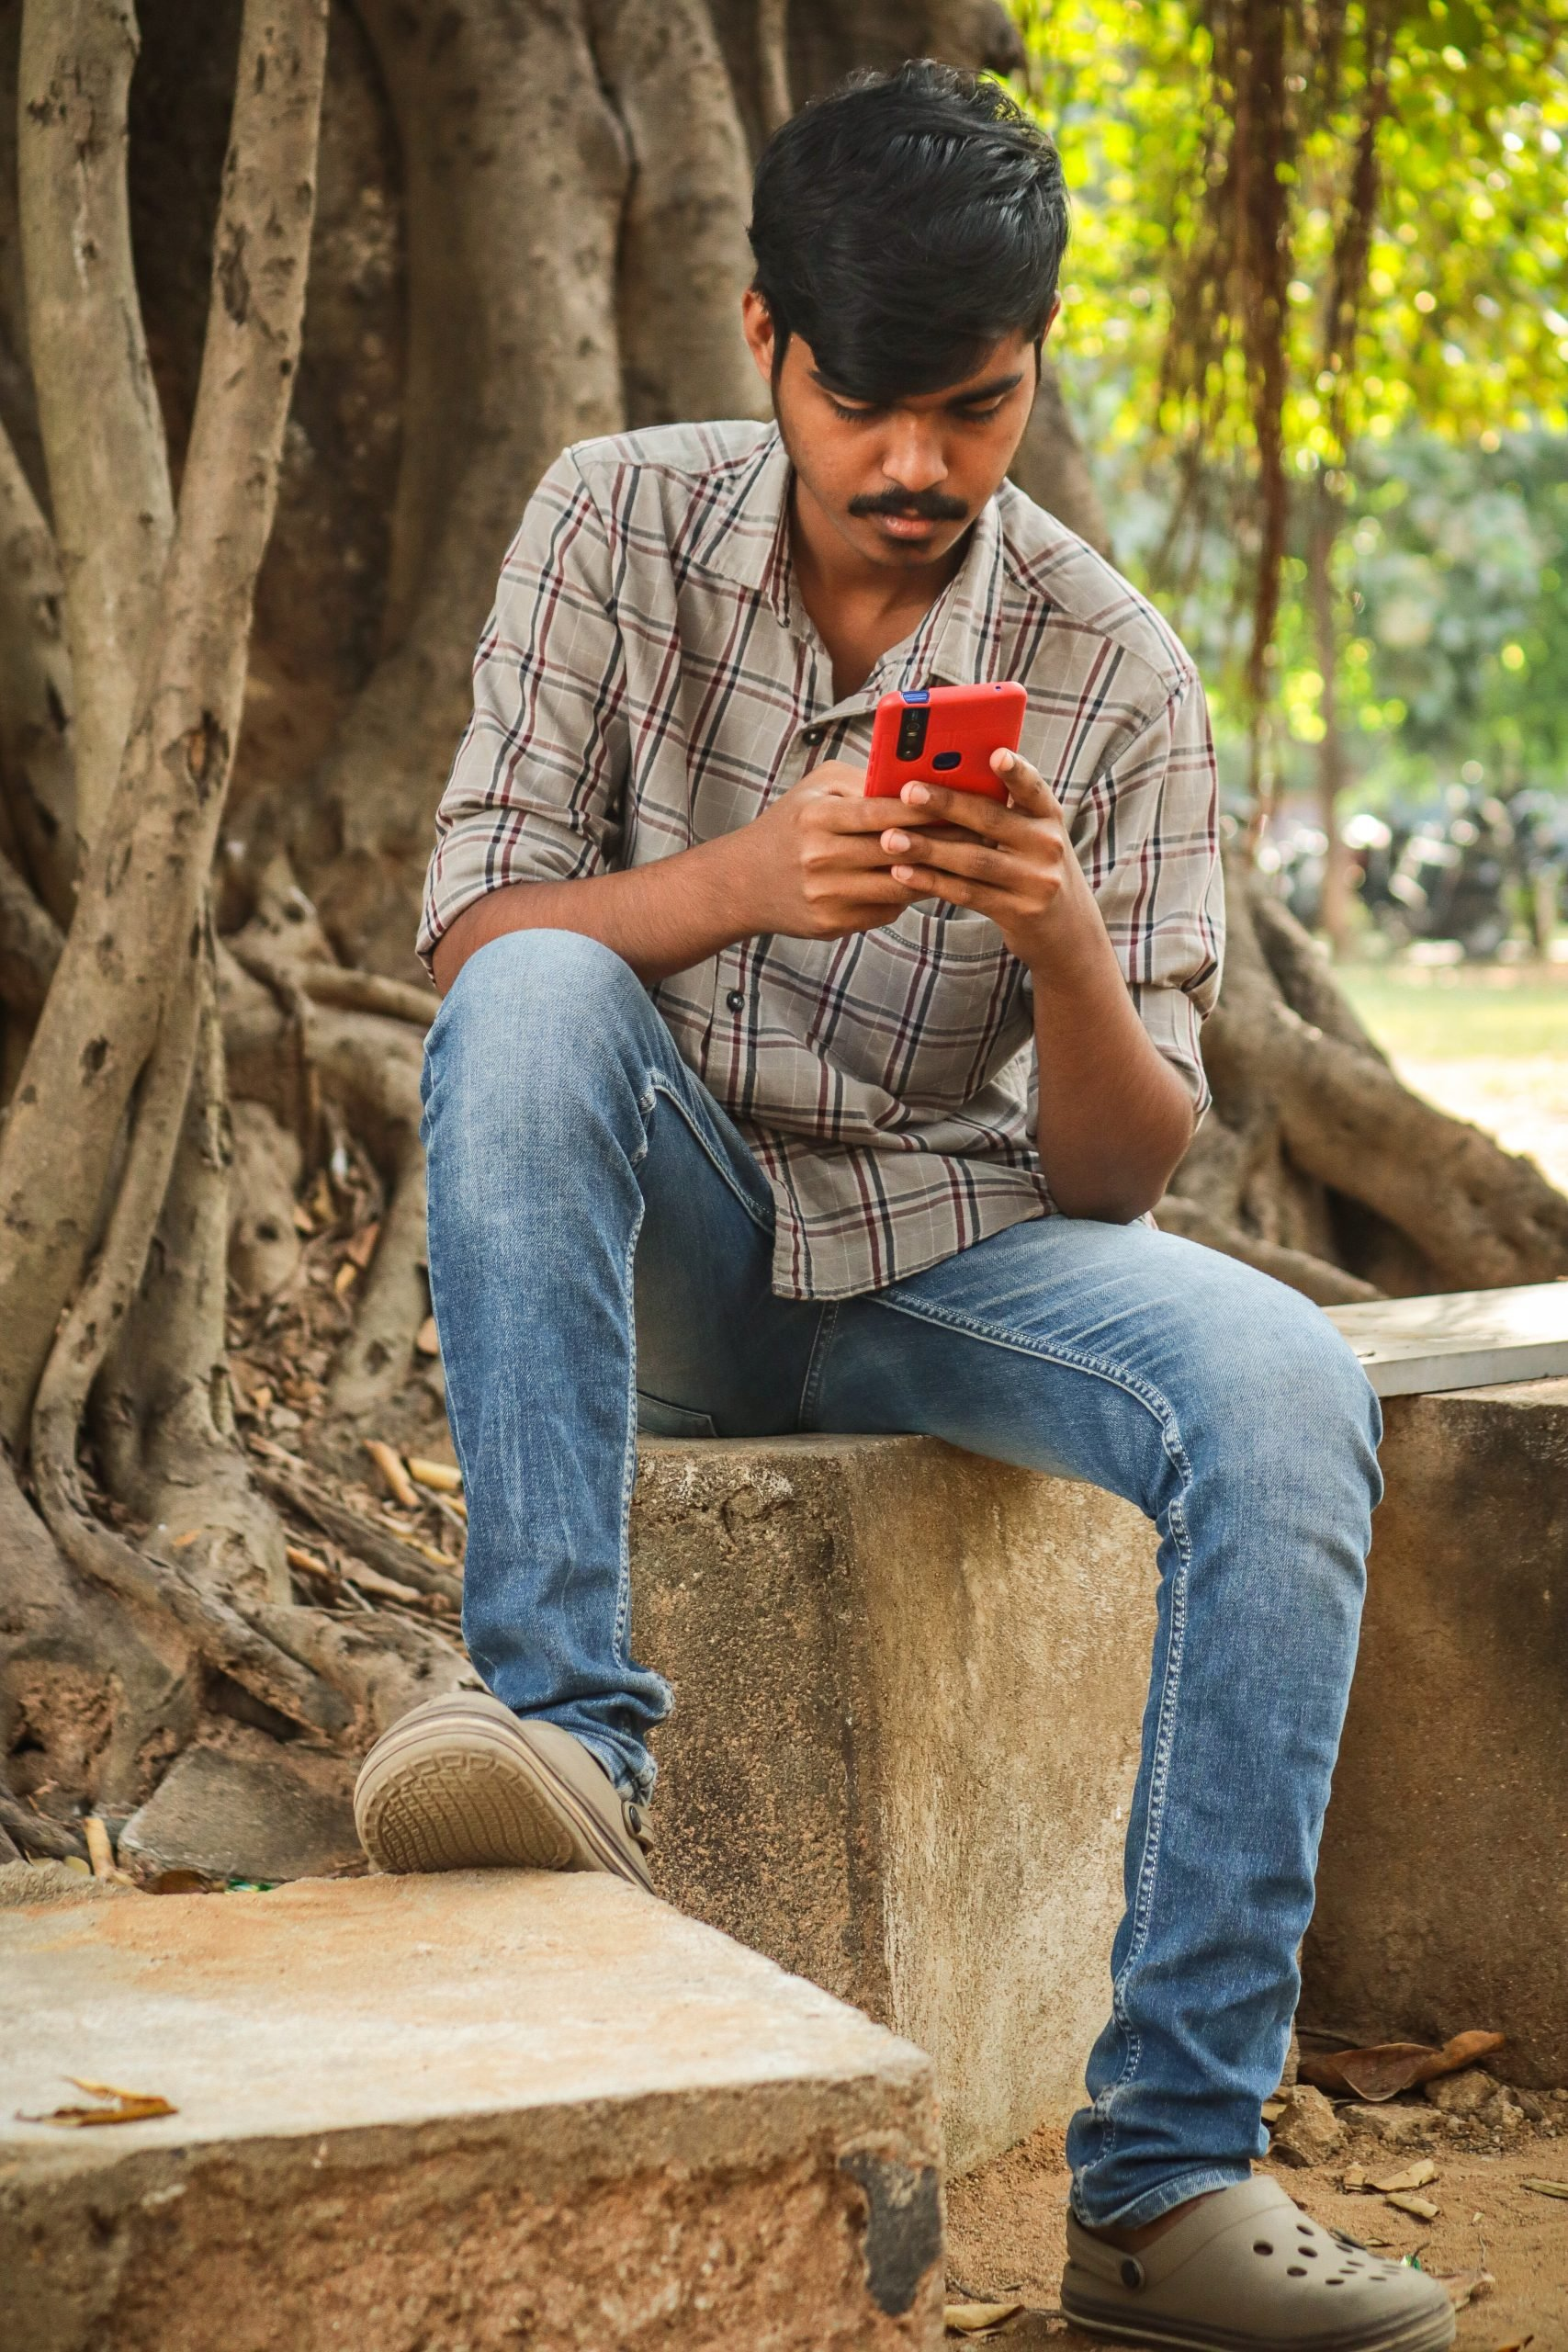 A boy using a smartphone